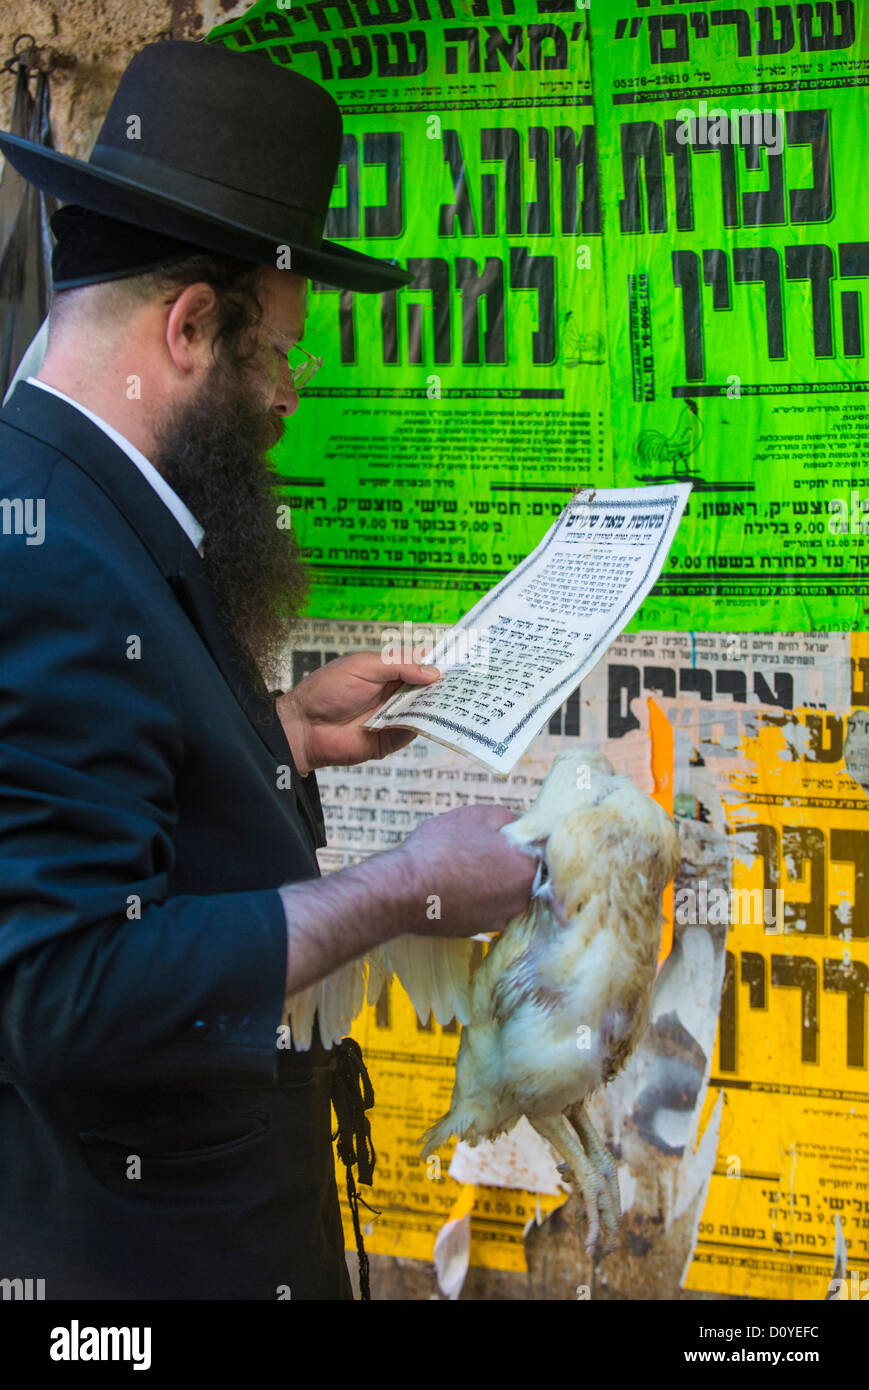 An ultra Orthodox Jewish man prays with a chicken during the Kaparot ceremony held in Jerusalem Israel - Stock Image